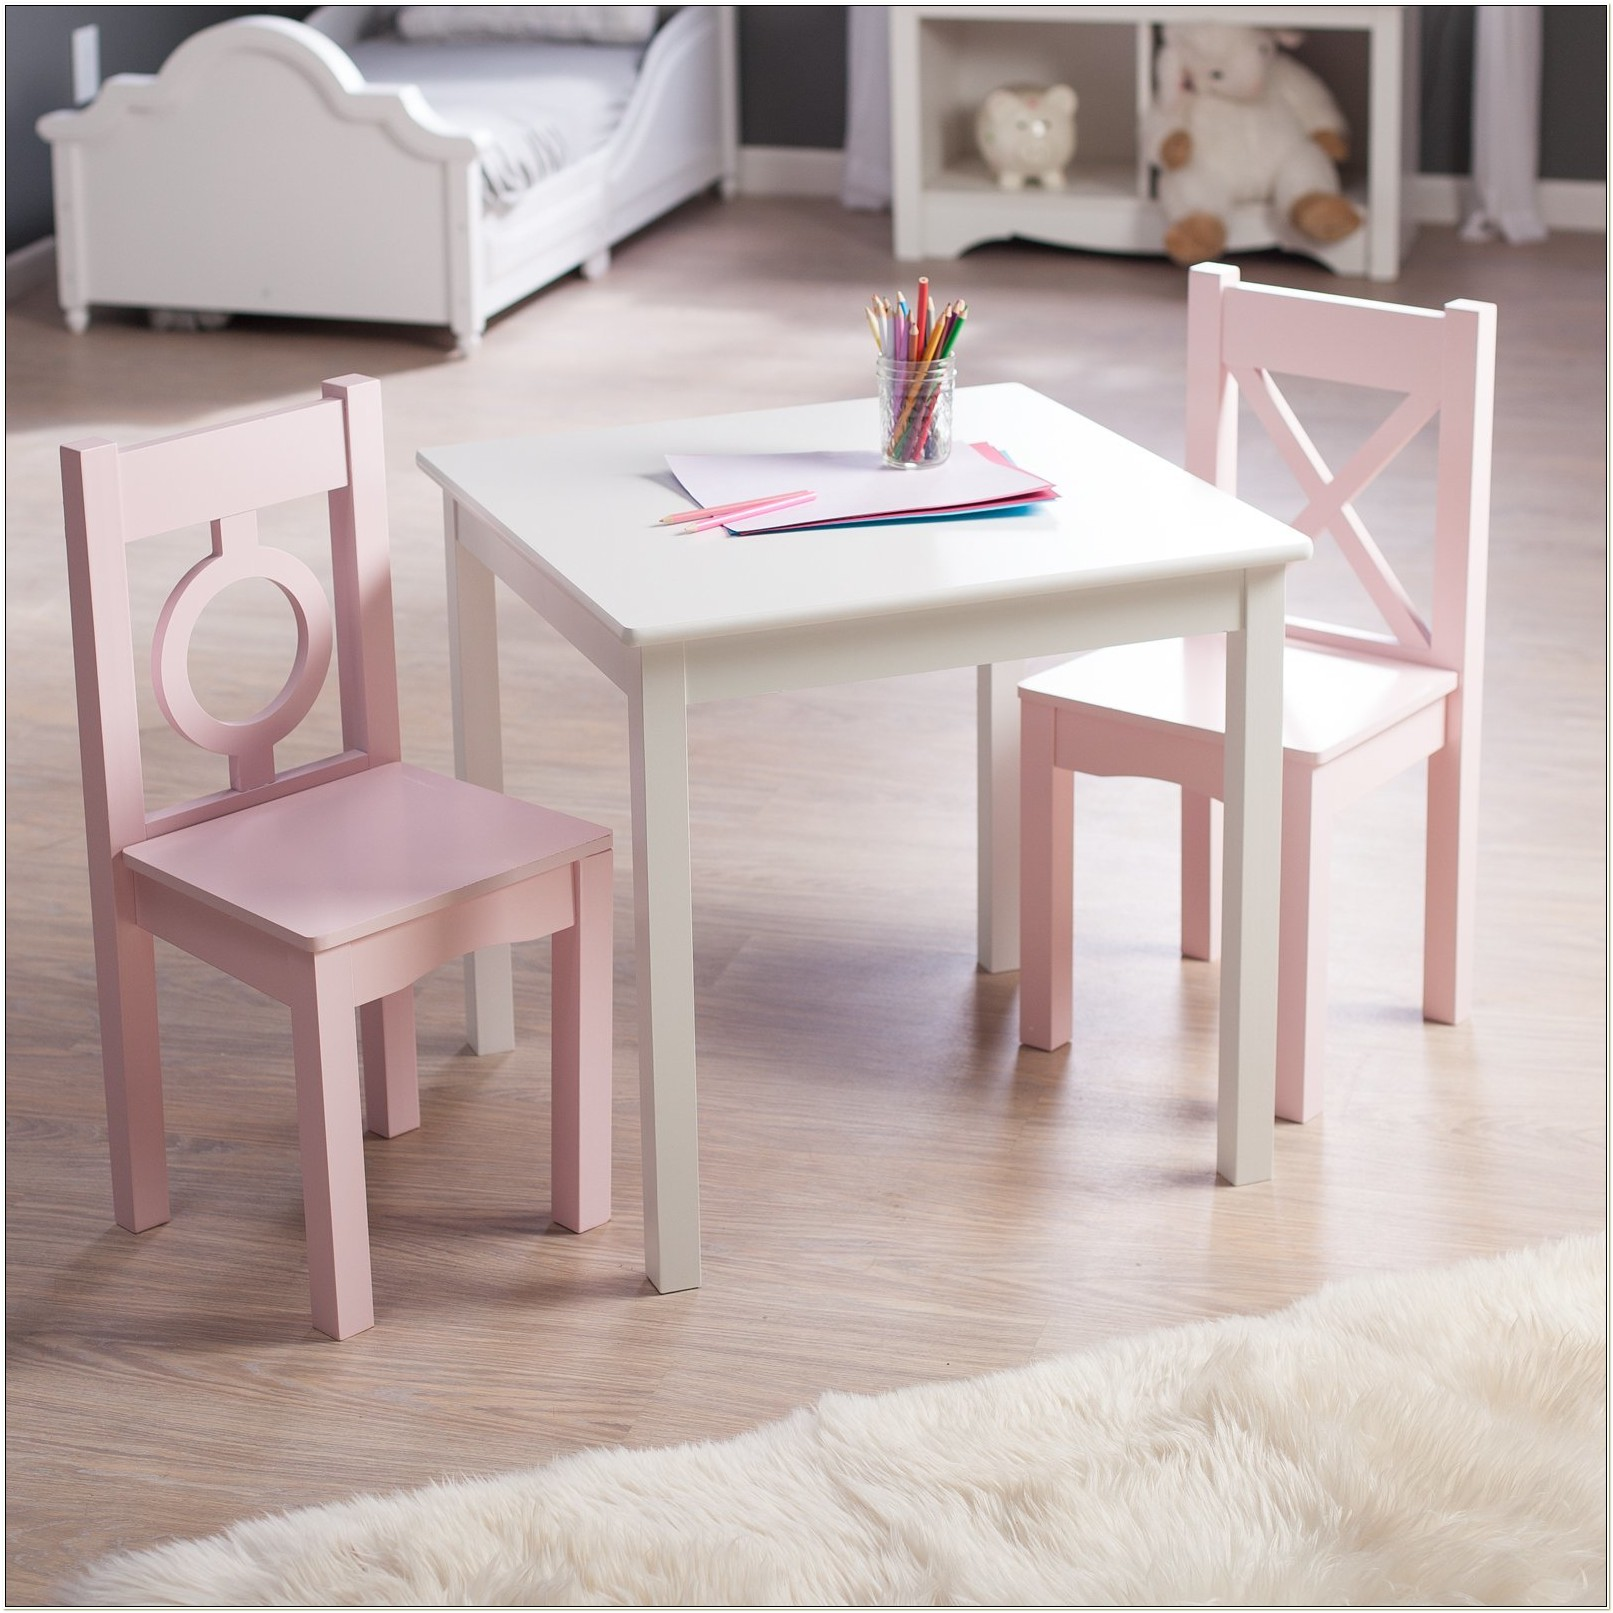 Lipper Toddler Table And Chair Set